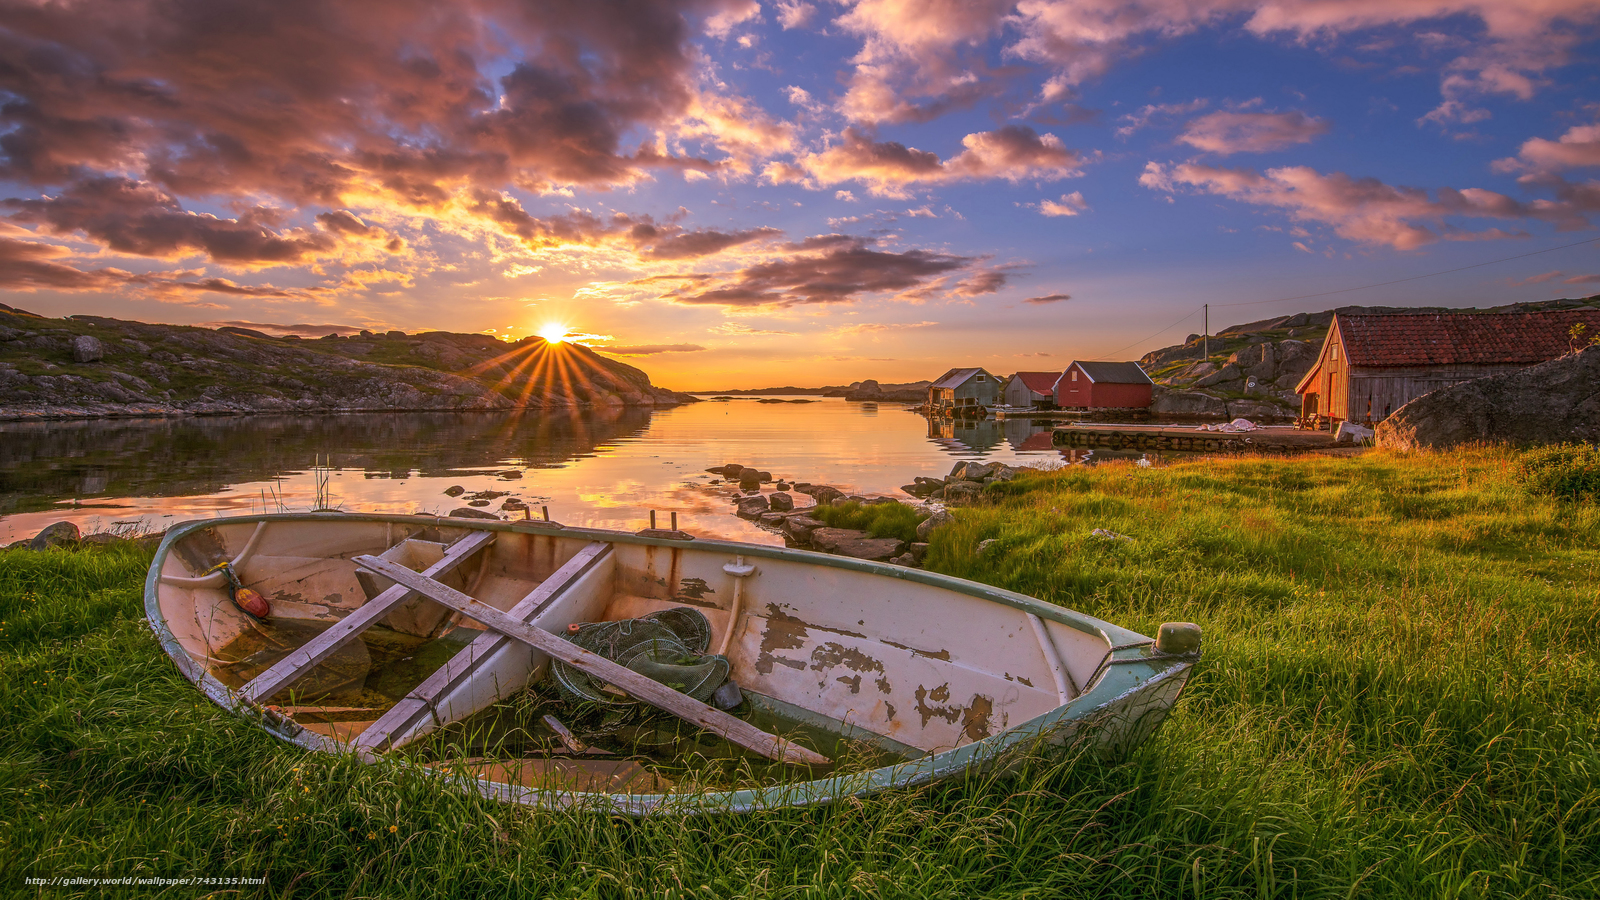 landscape, a boat, boats, water, nature, peace, relaxation, River, lake, sunset, dawn, the sun, bright, grass, Coast, houses, Province, village, sky, clouds